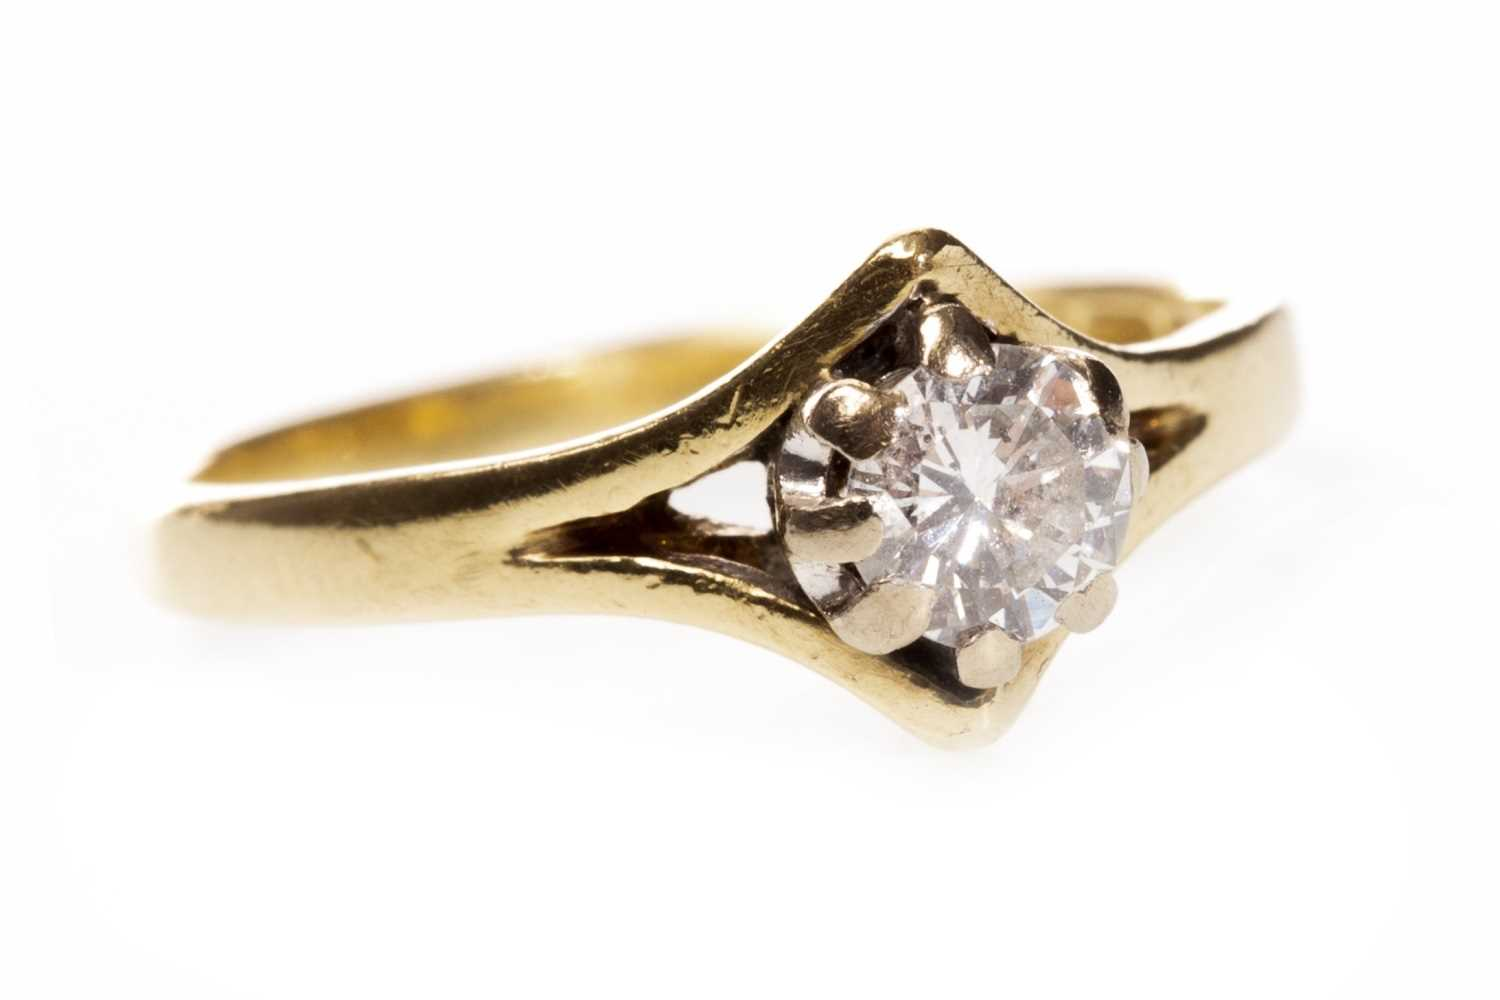 Lot 71 - A DIAMOND SOLITAIRE RING